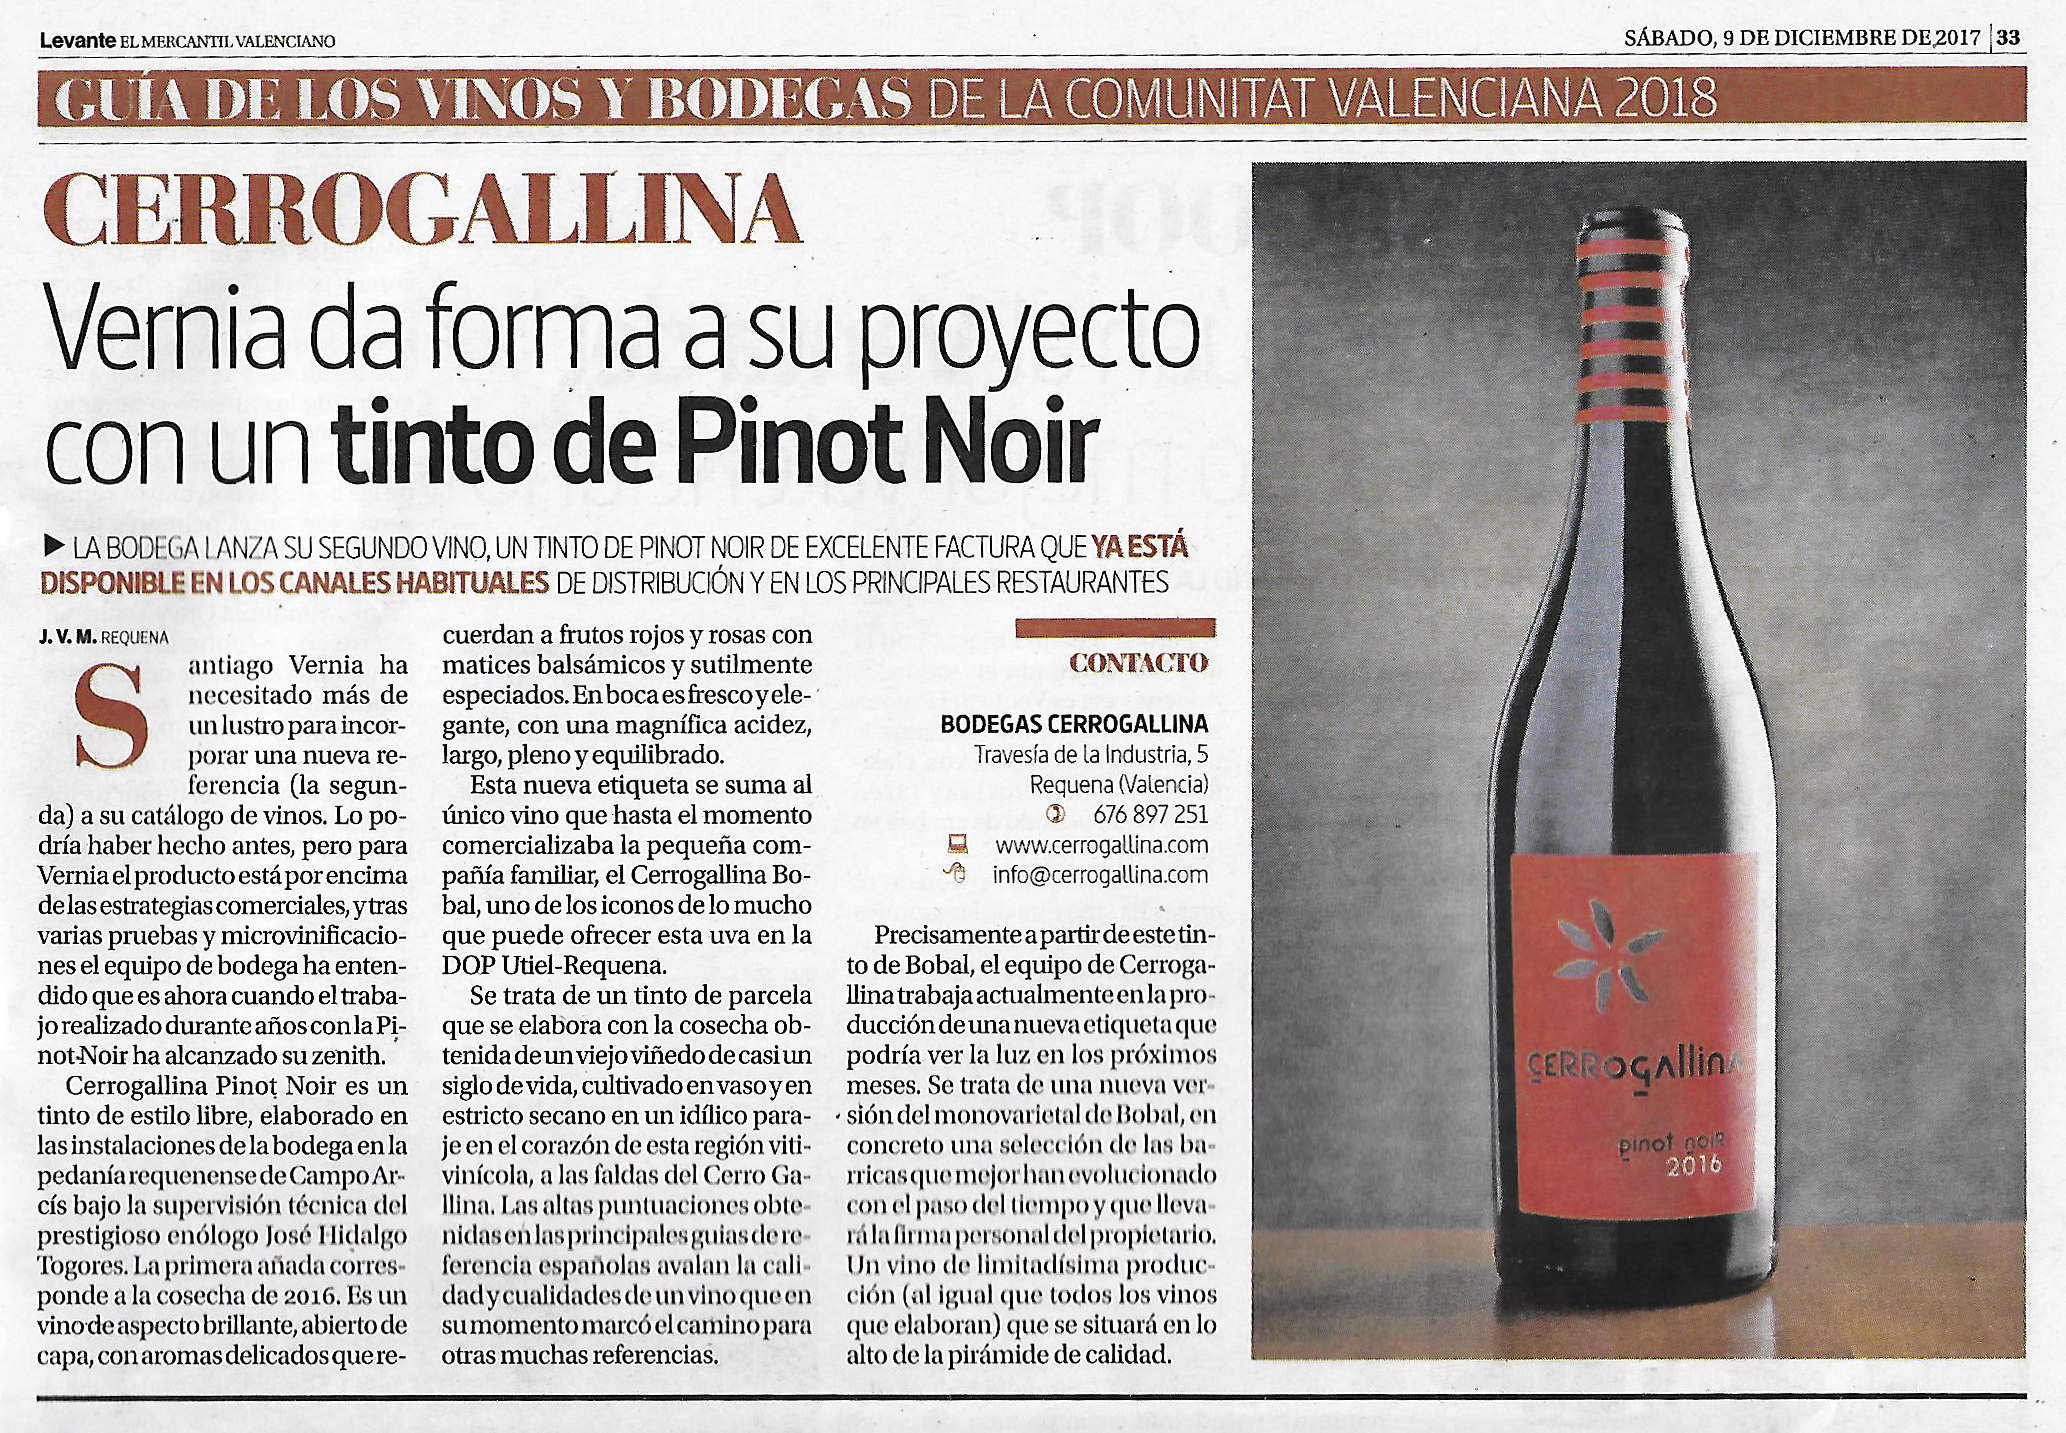 Cerrogallina Pinot Noir in the newspaper again